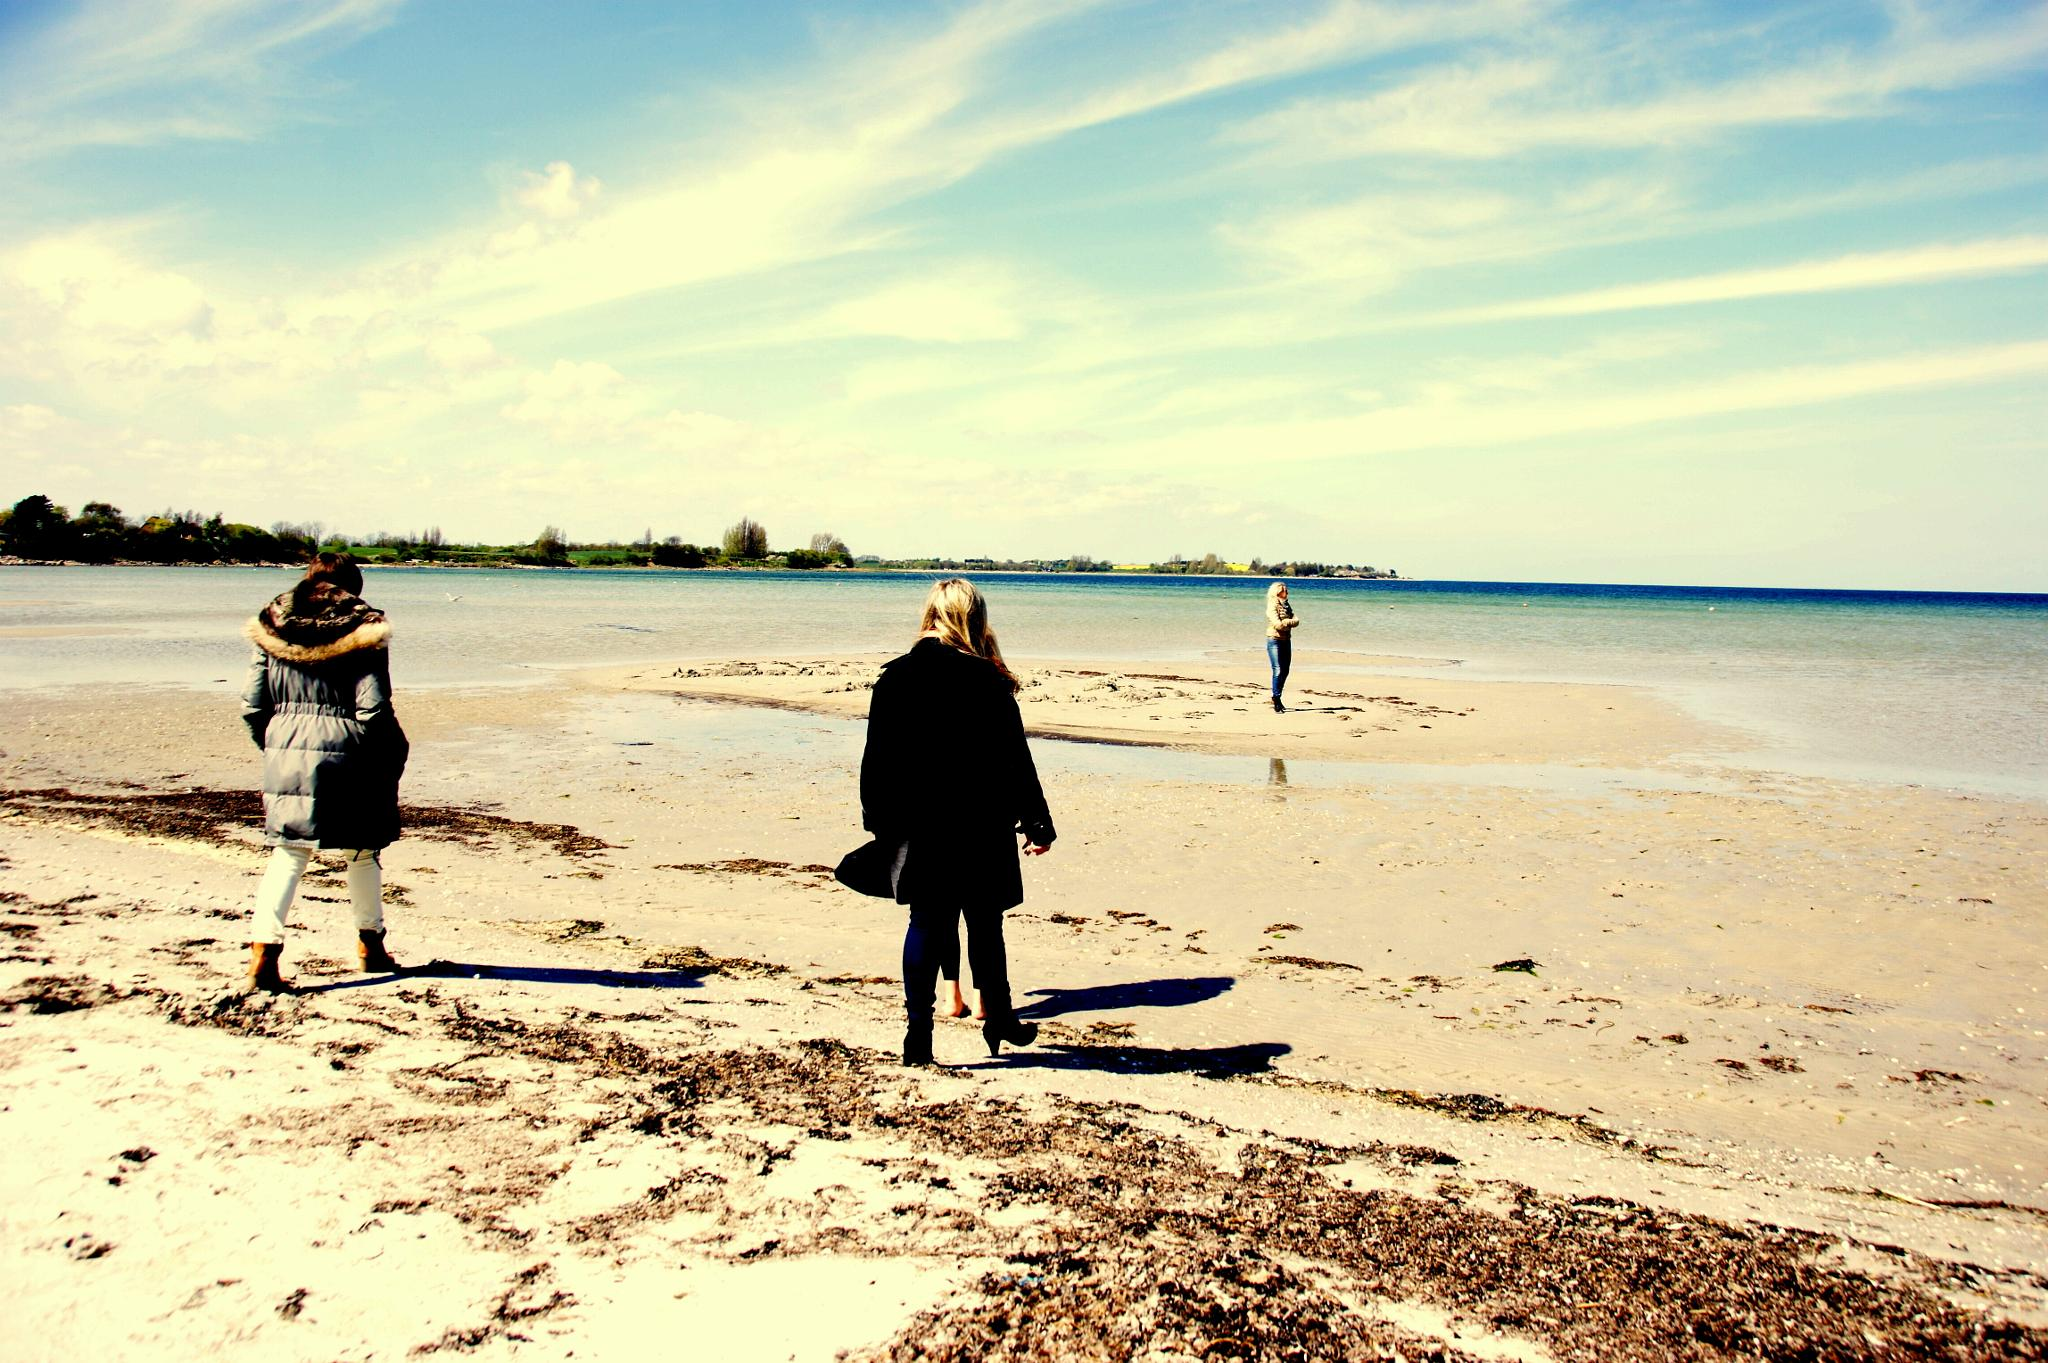 Walk at the beach by tina.nielsen.16100